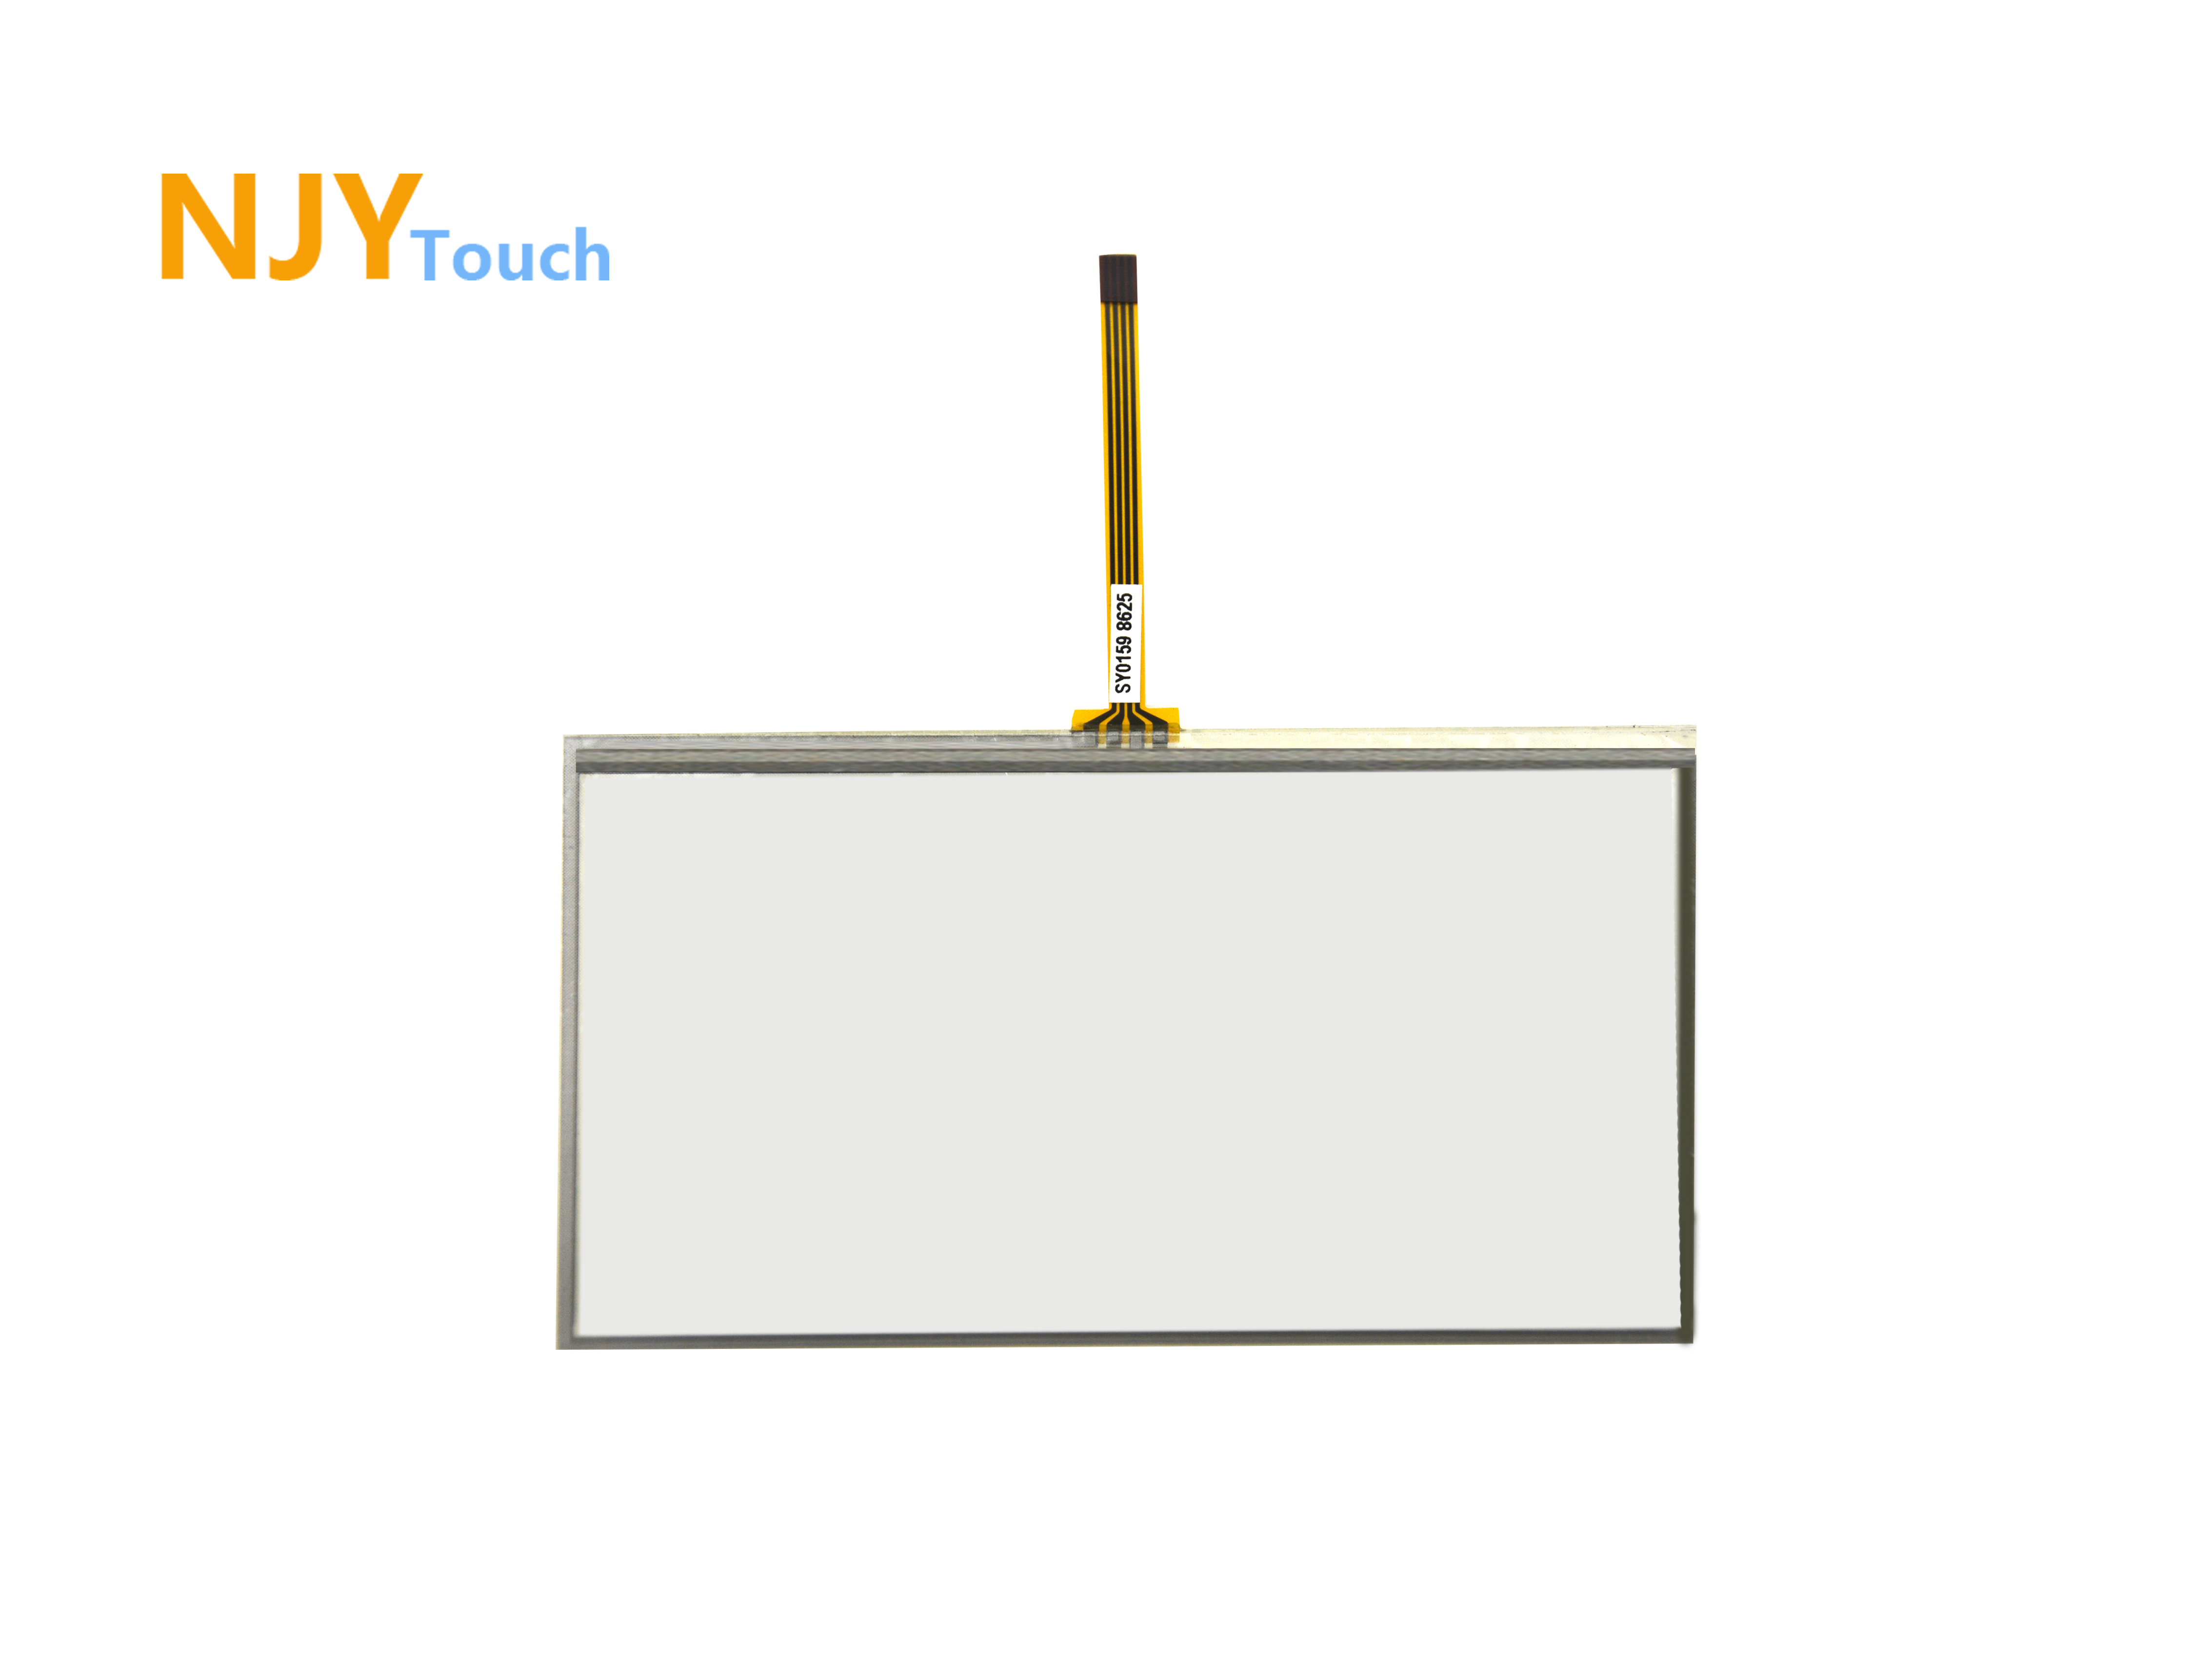 6.2 inch 4 Wire Resistive Touch Panel 150mm x 90mm Handwriting Screen GPS